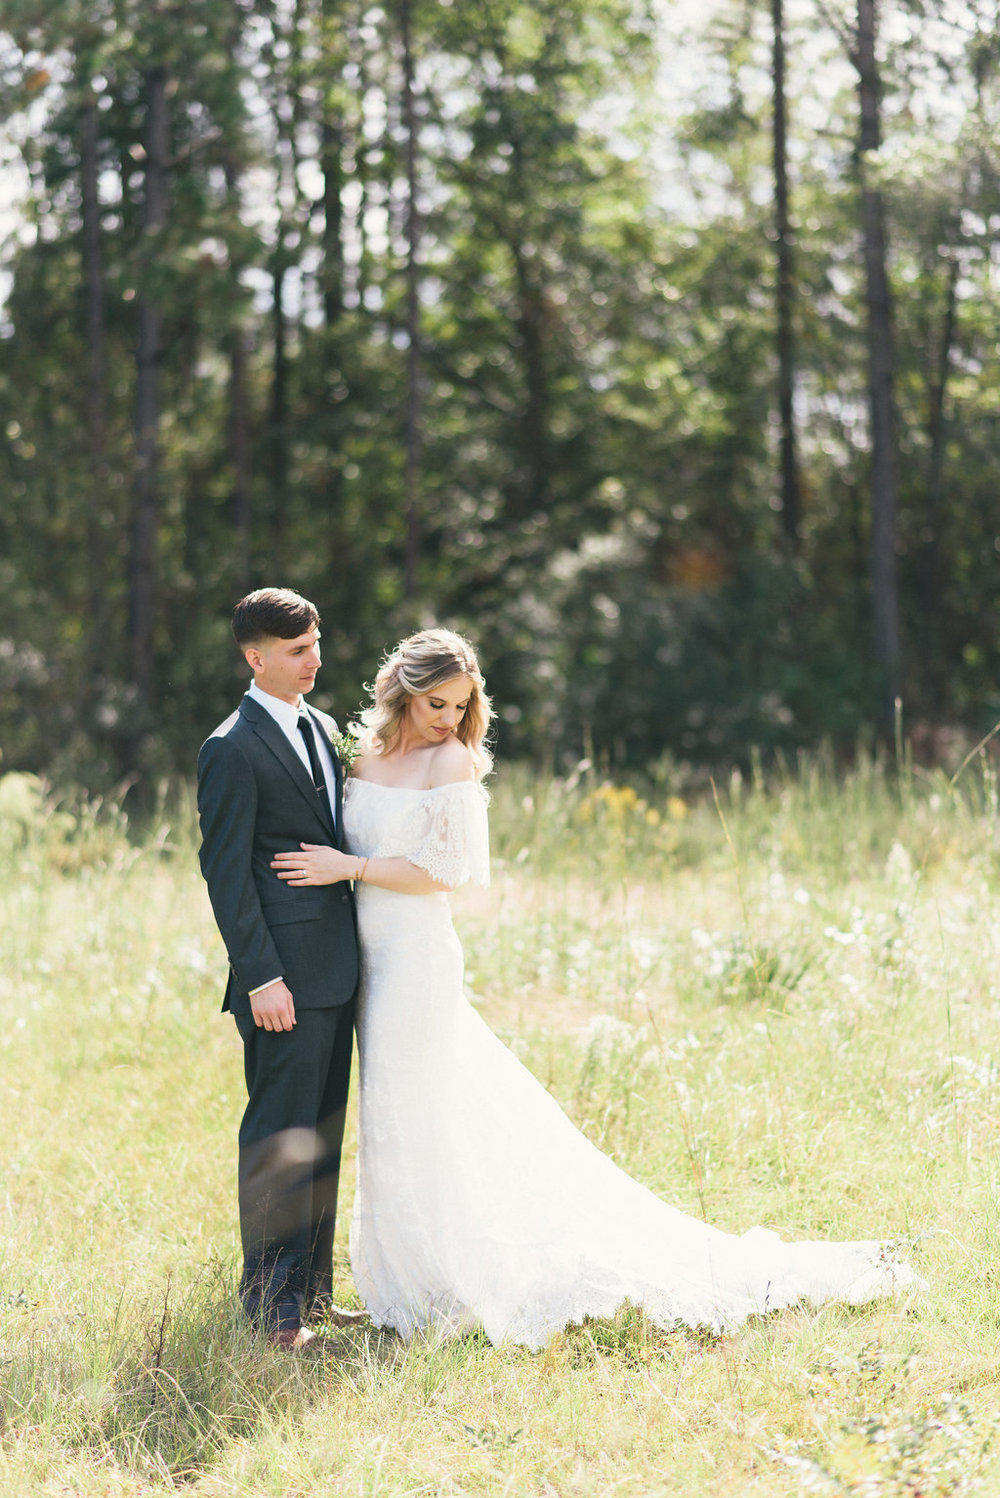 VICTORIA'S OUTDOORSY BOHO DOUGLAS GA WEDDING